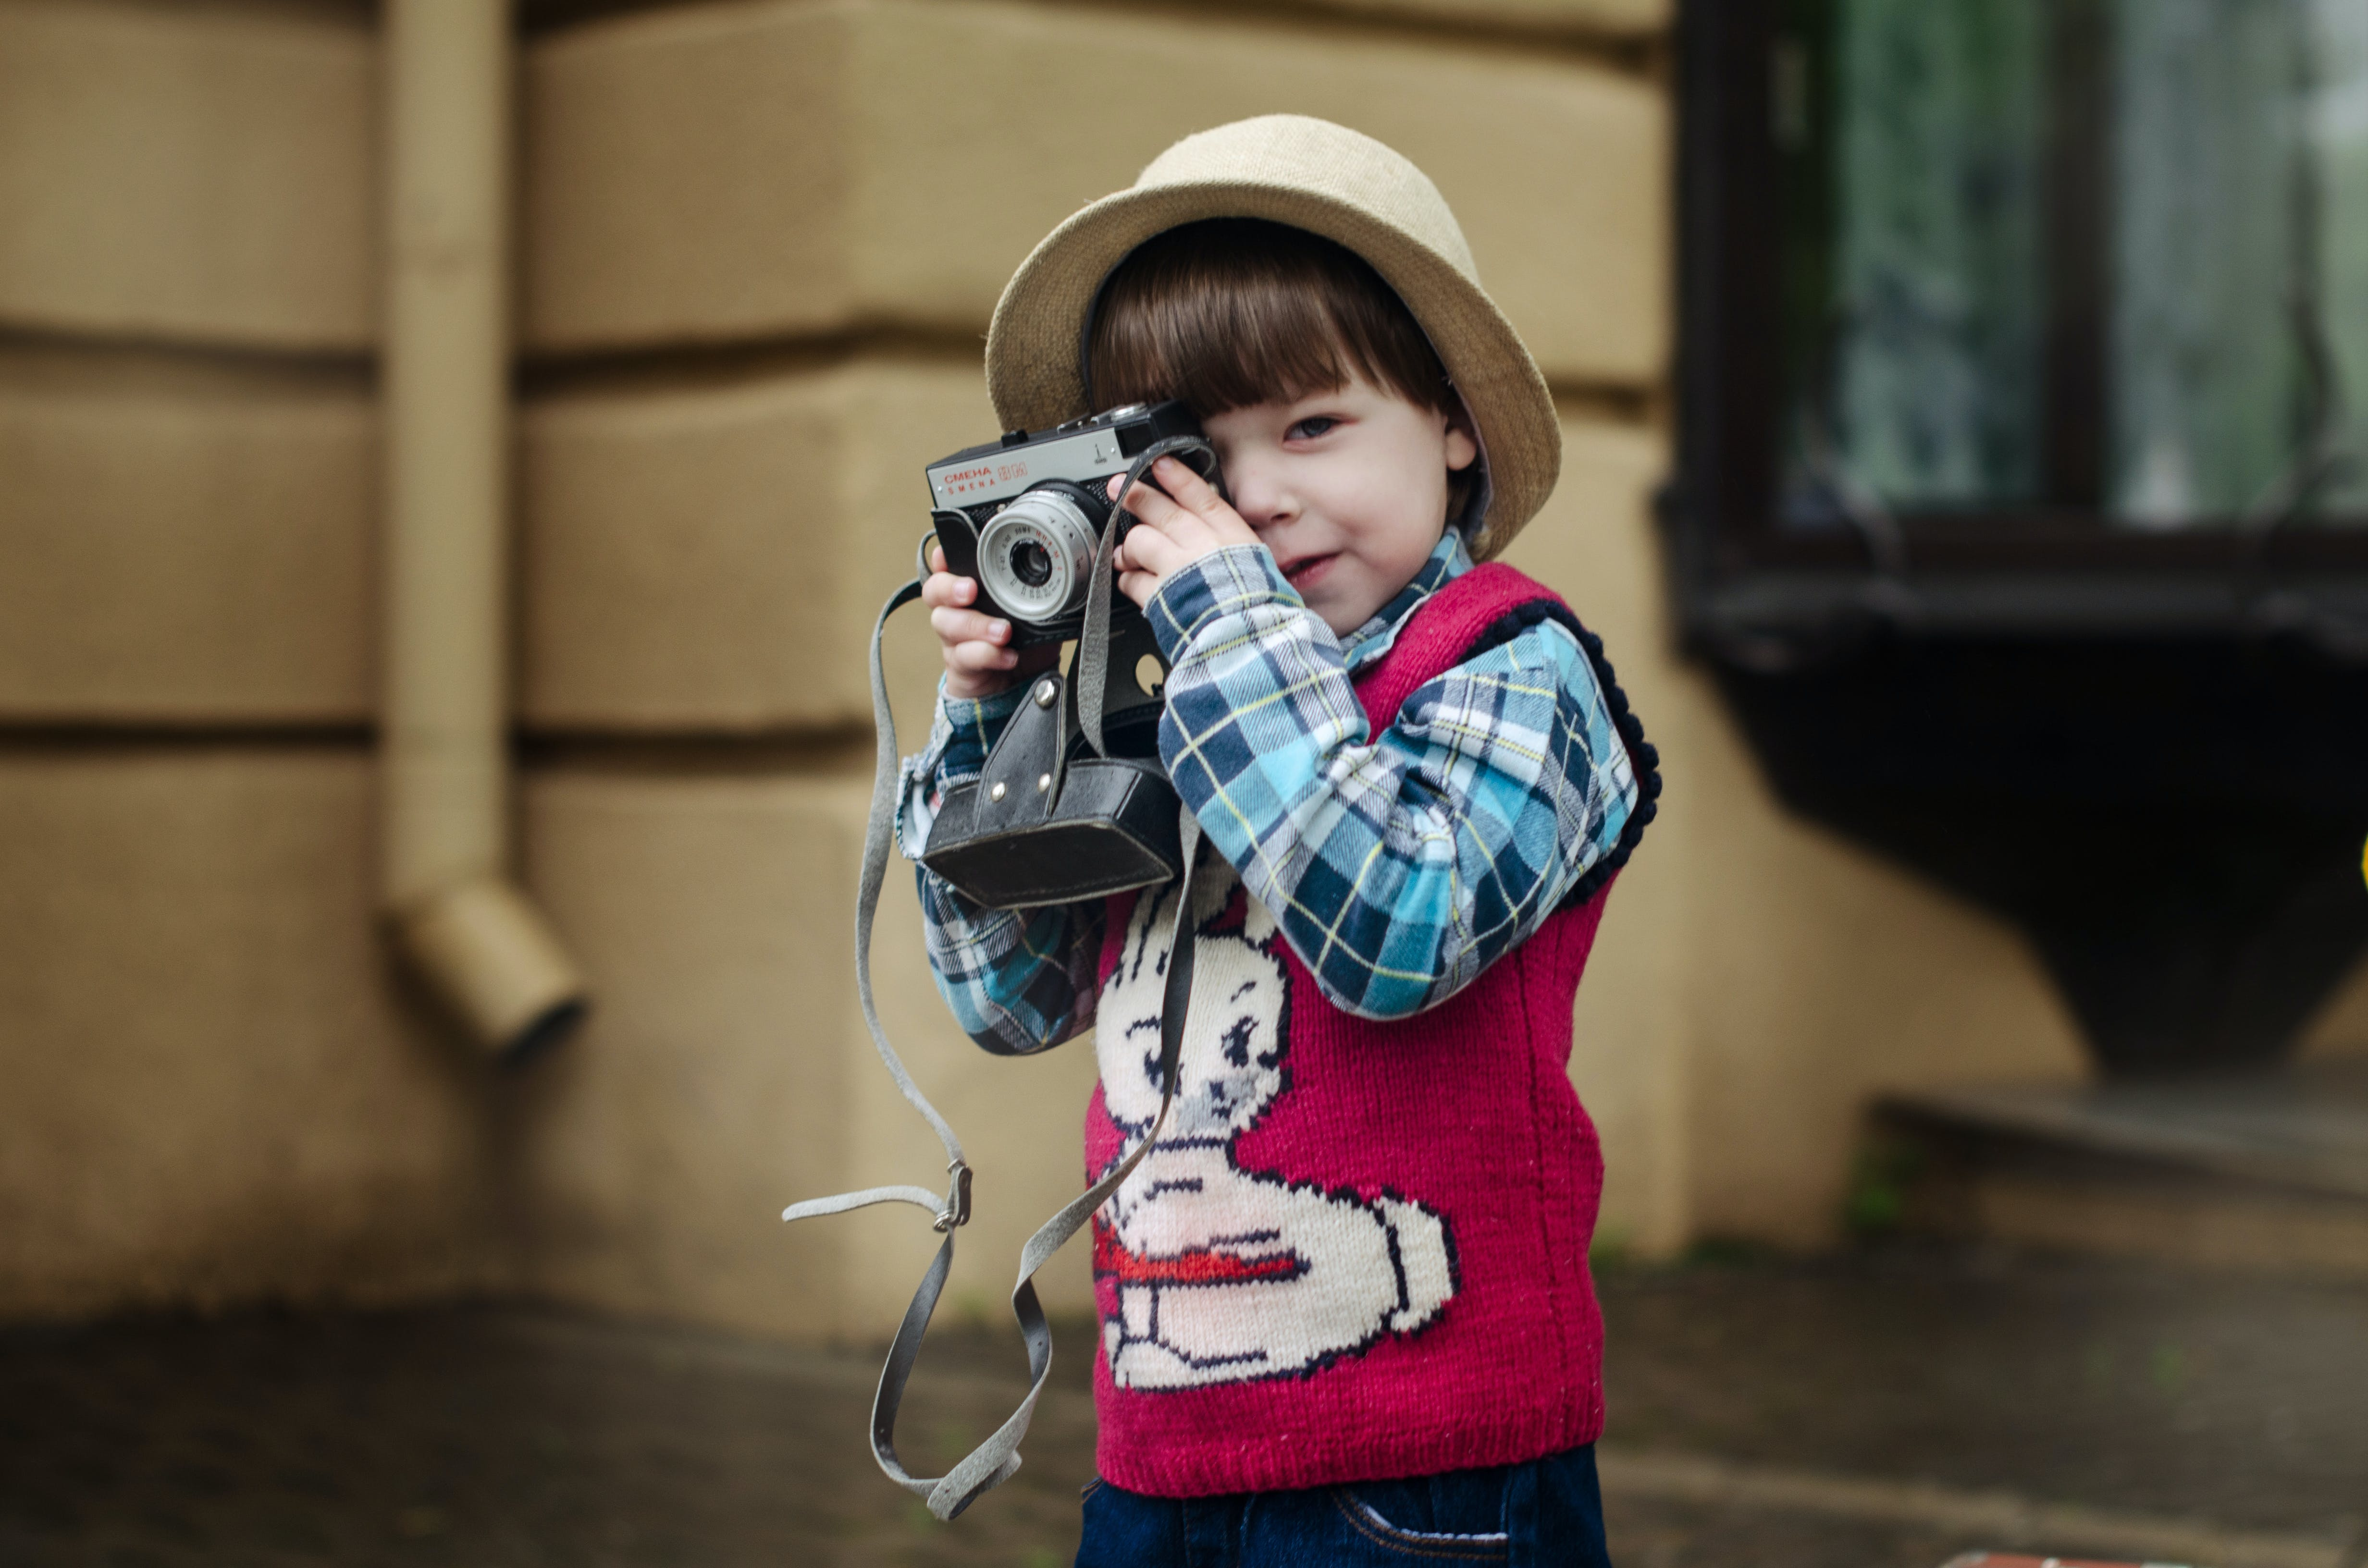 Toddler in Preppy Look Outfit Taking Photo